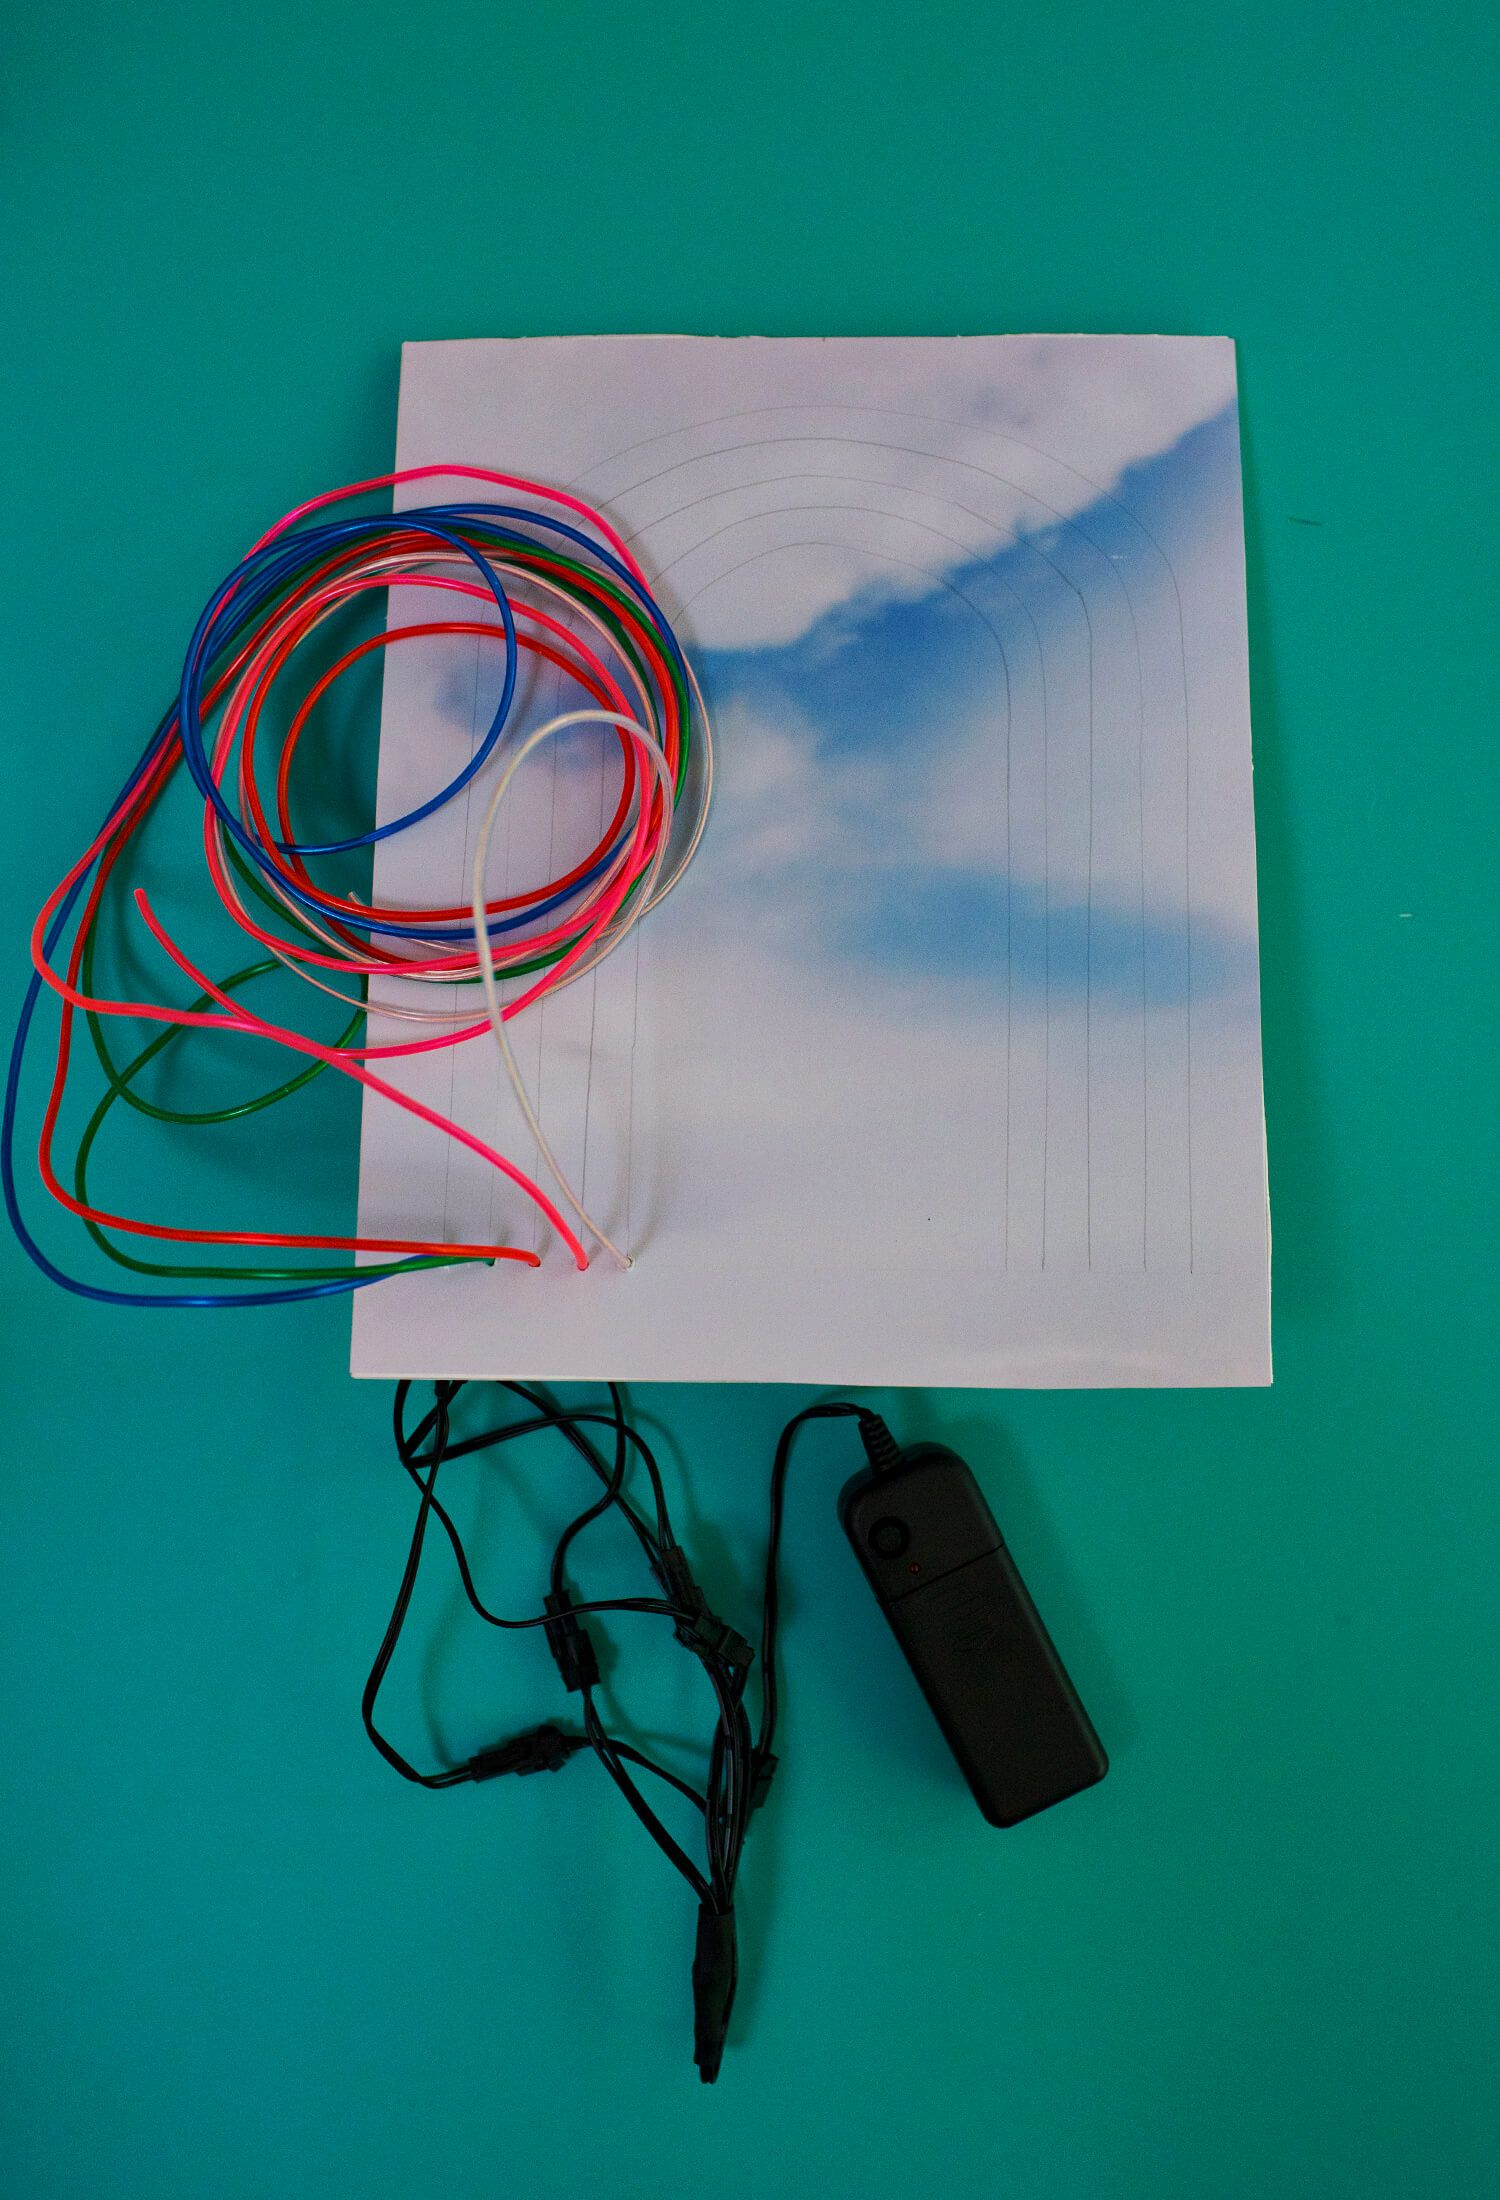 How to make a neon sign with el wire